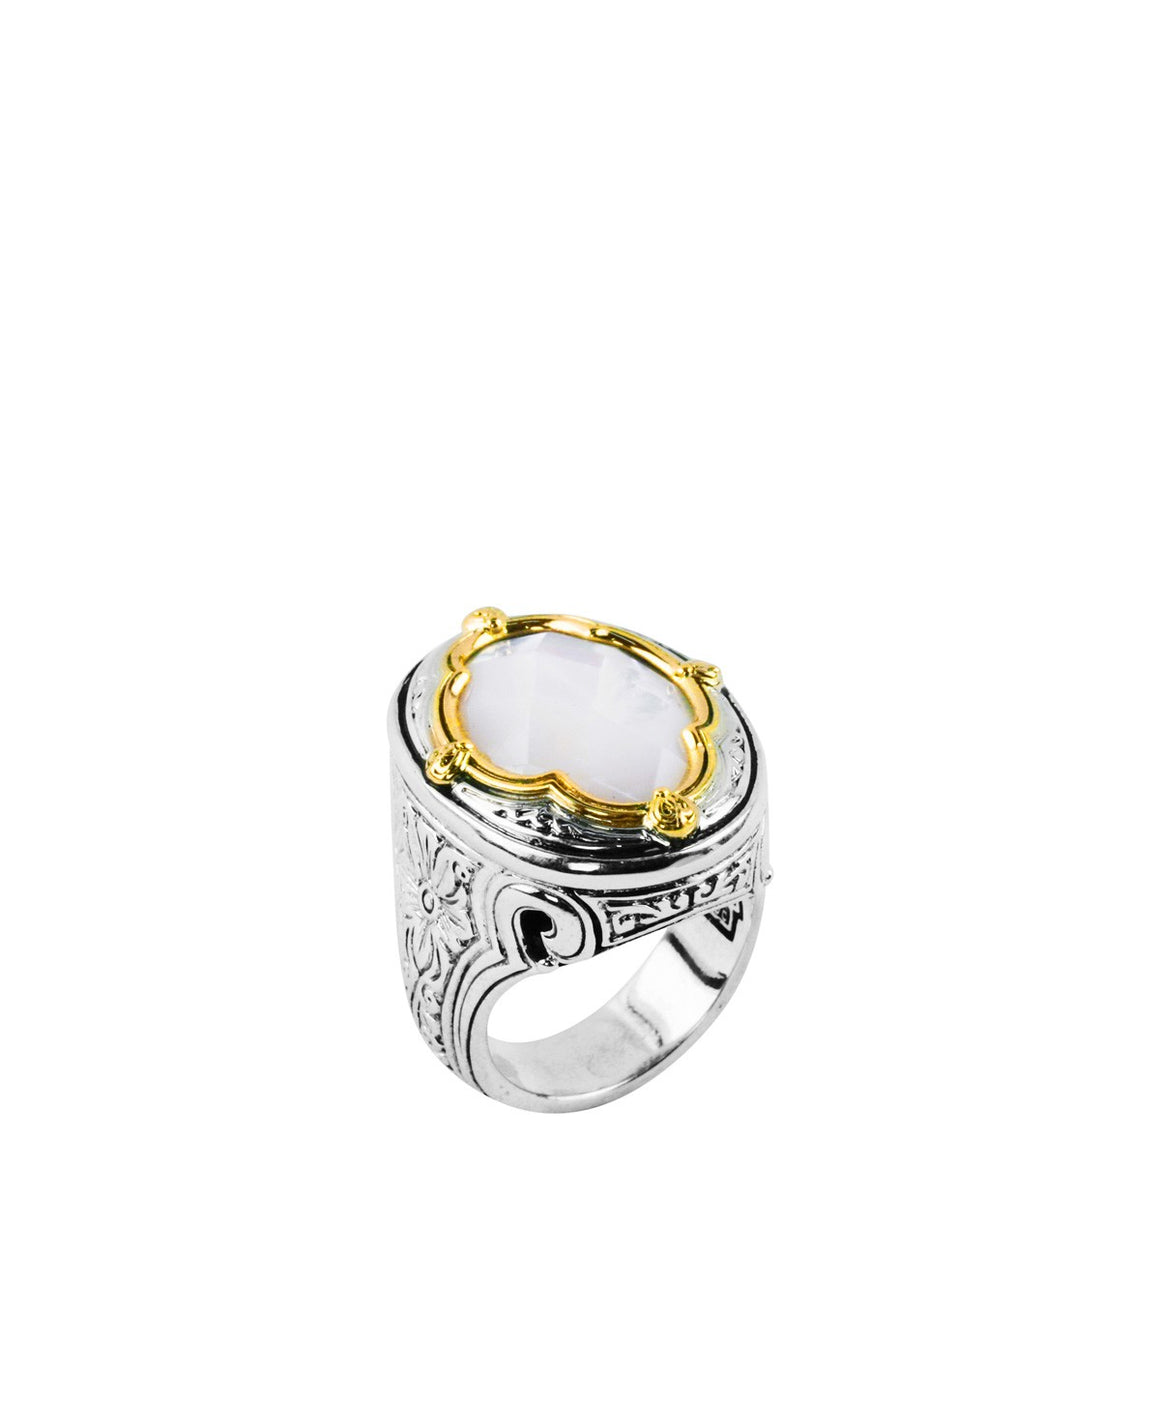 Sterling Silver & 18kt Gold Mother of Pearl Ring